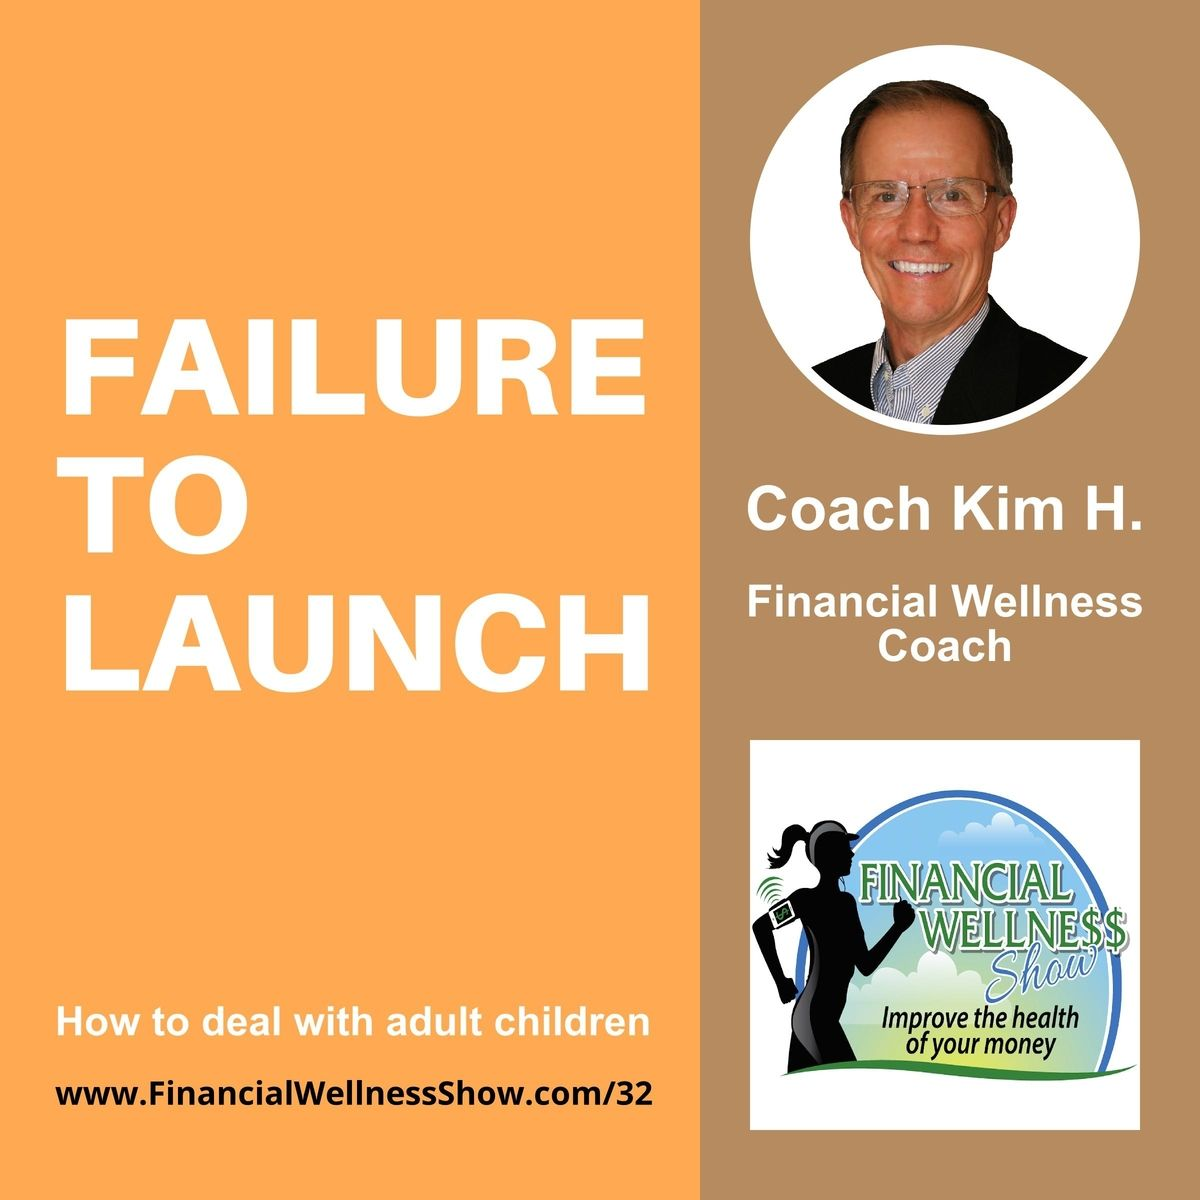 FAILURE TO LAUNCH: Dealing with adult children